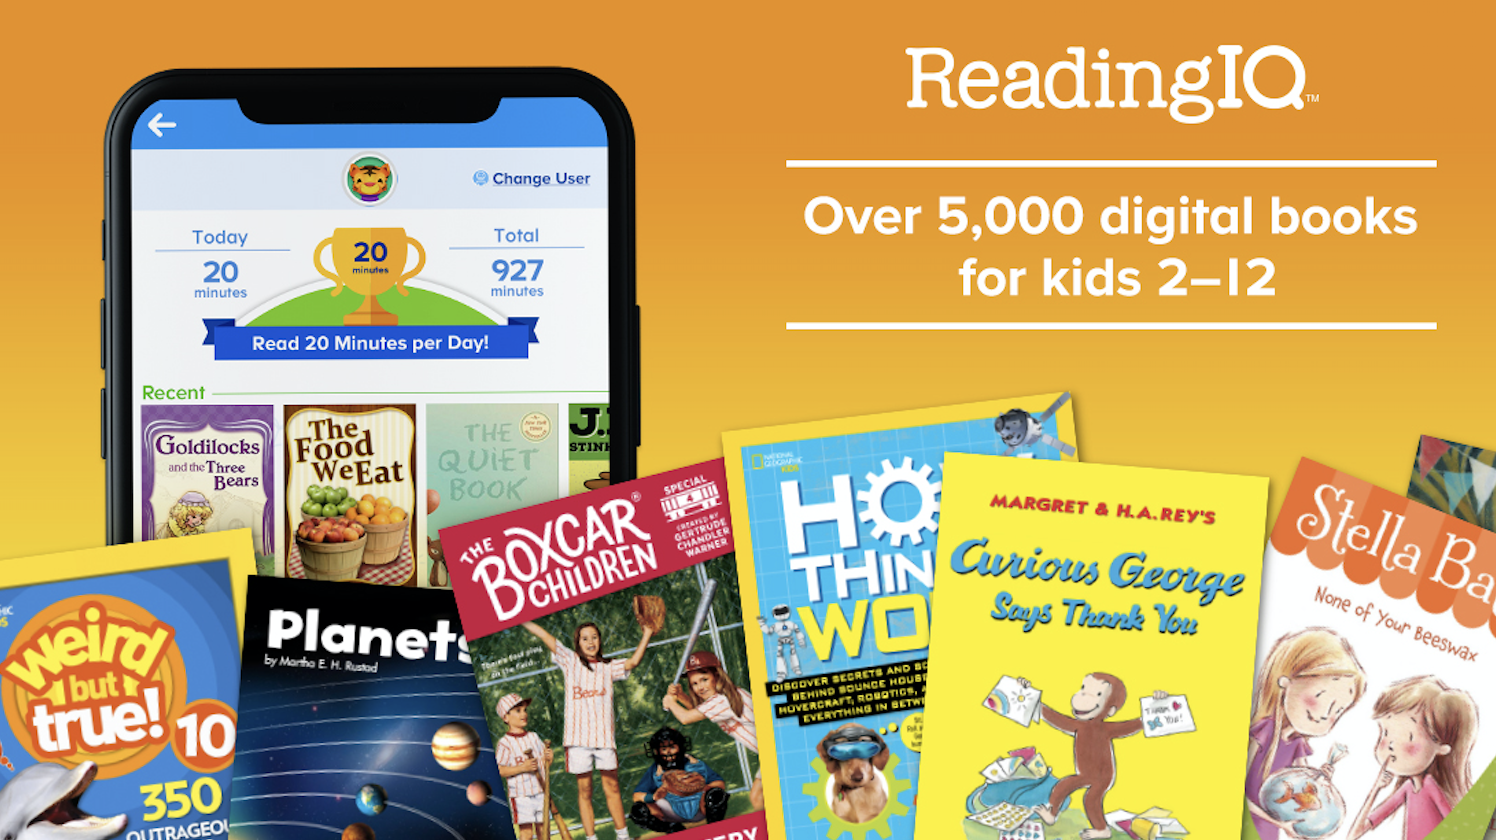 ReadingIQ for all kids